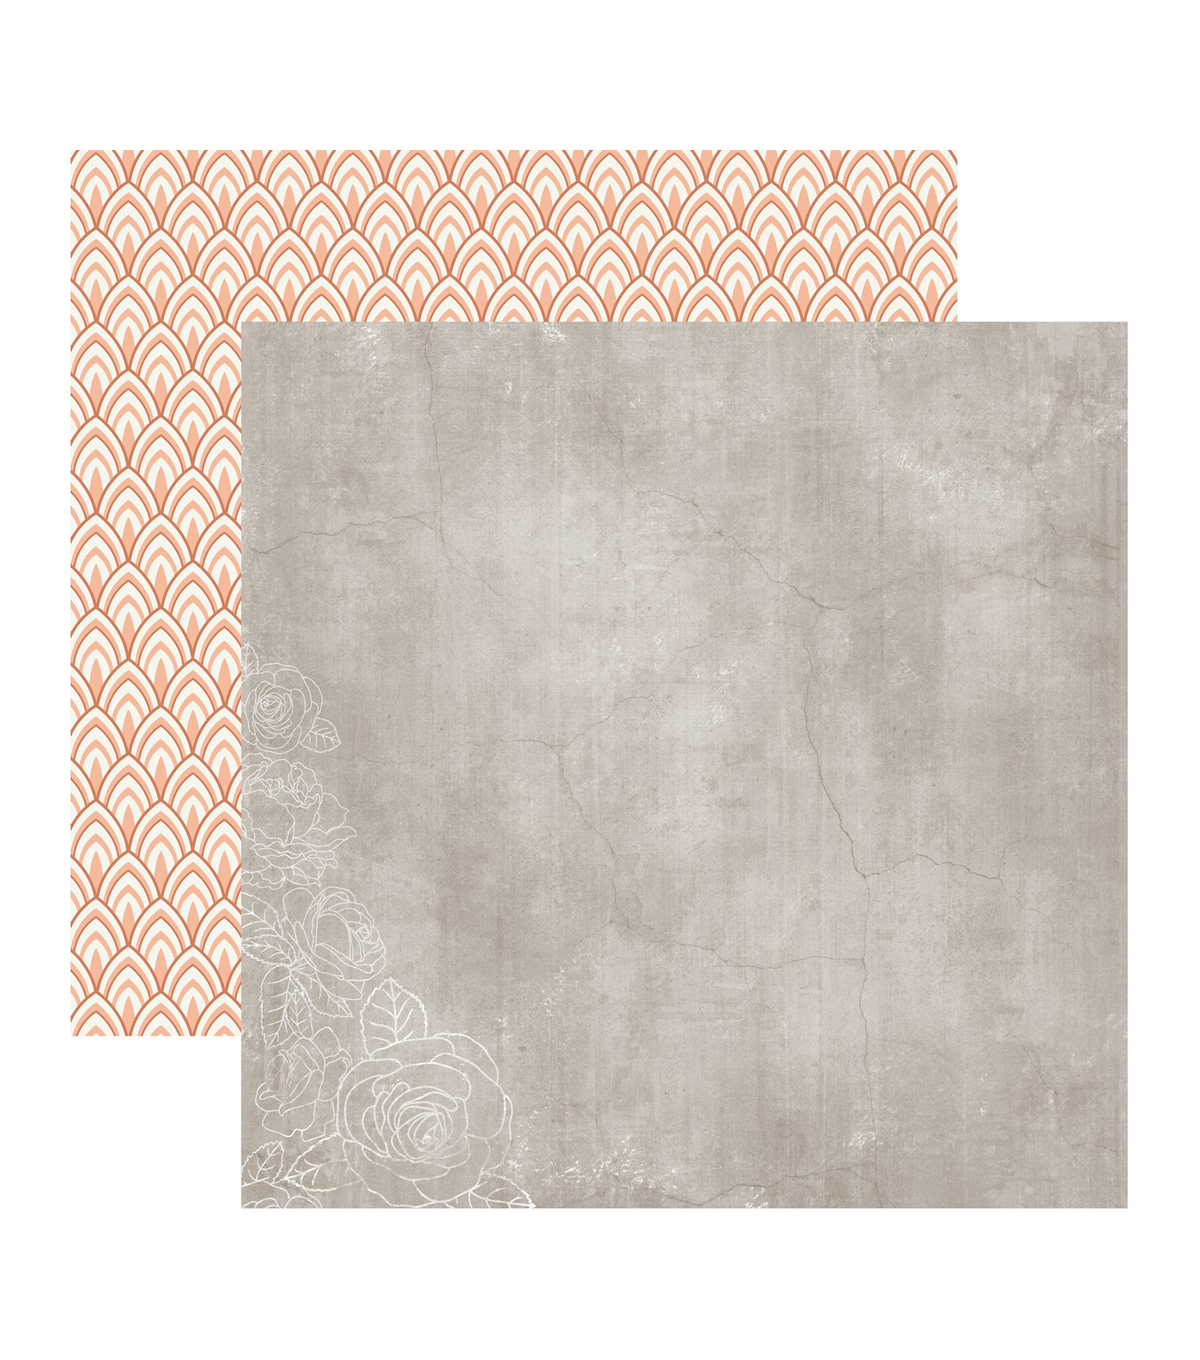 Peachy Double-Sided Cardstock 12\u0022X12\u0022-Aura